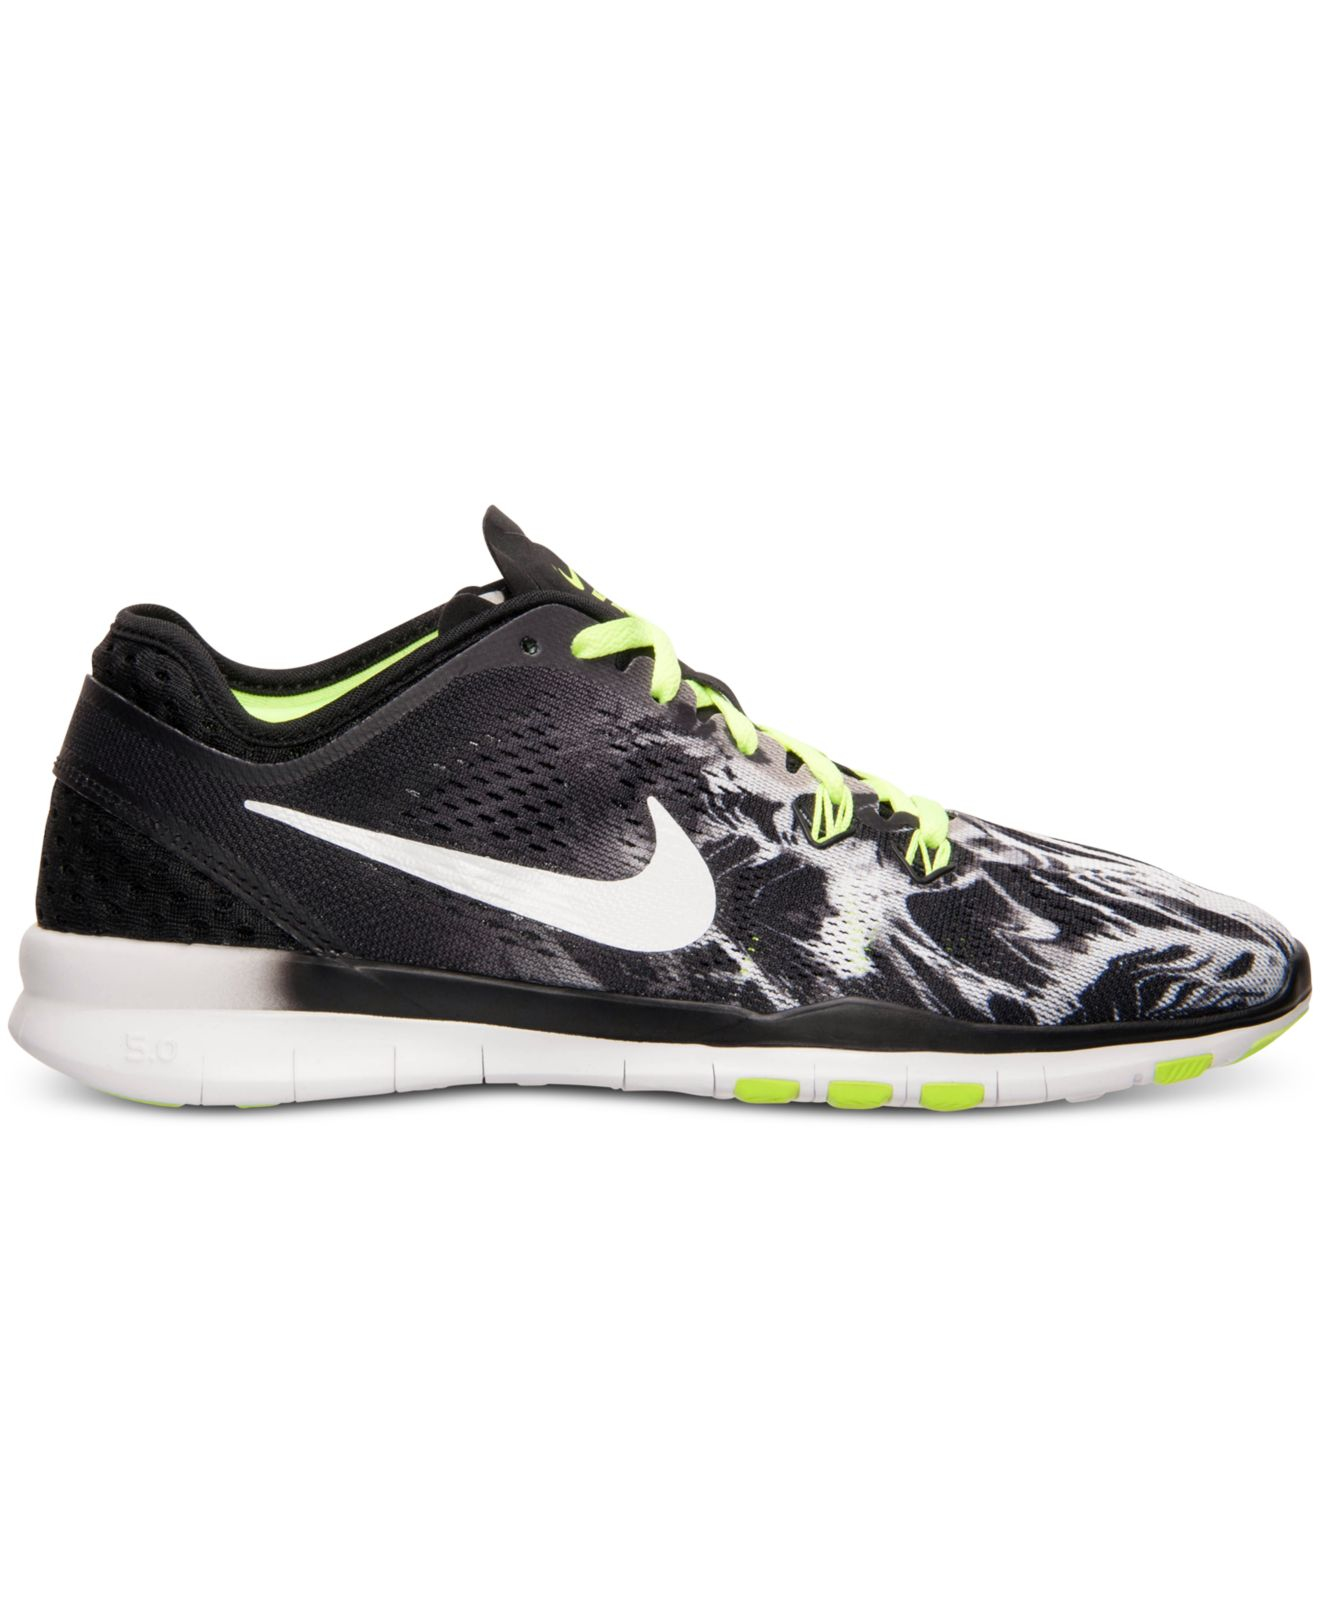 ea8837ea4e31a ... purchase lyst nike womens free 5.0 tr fit 5 print training sneakers  from 75bc0 c5d4e